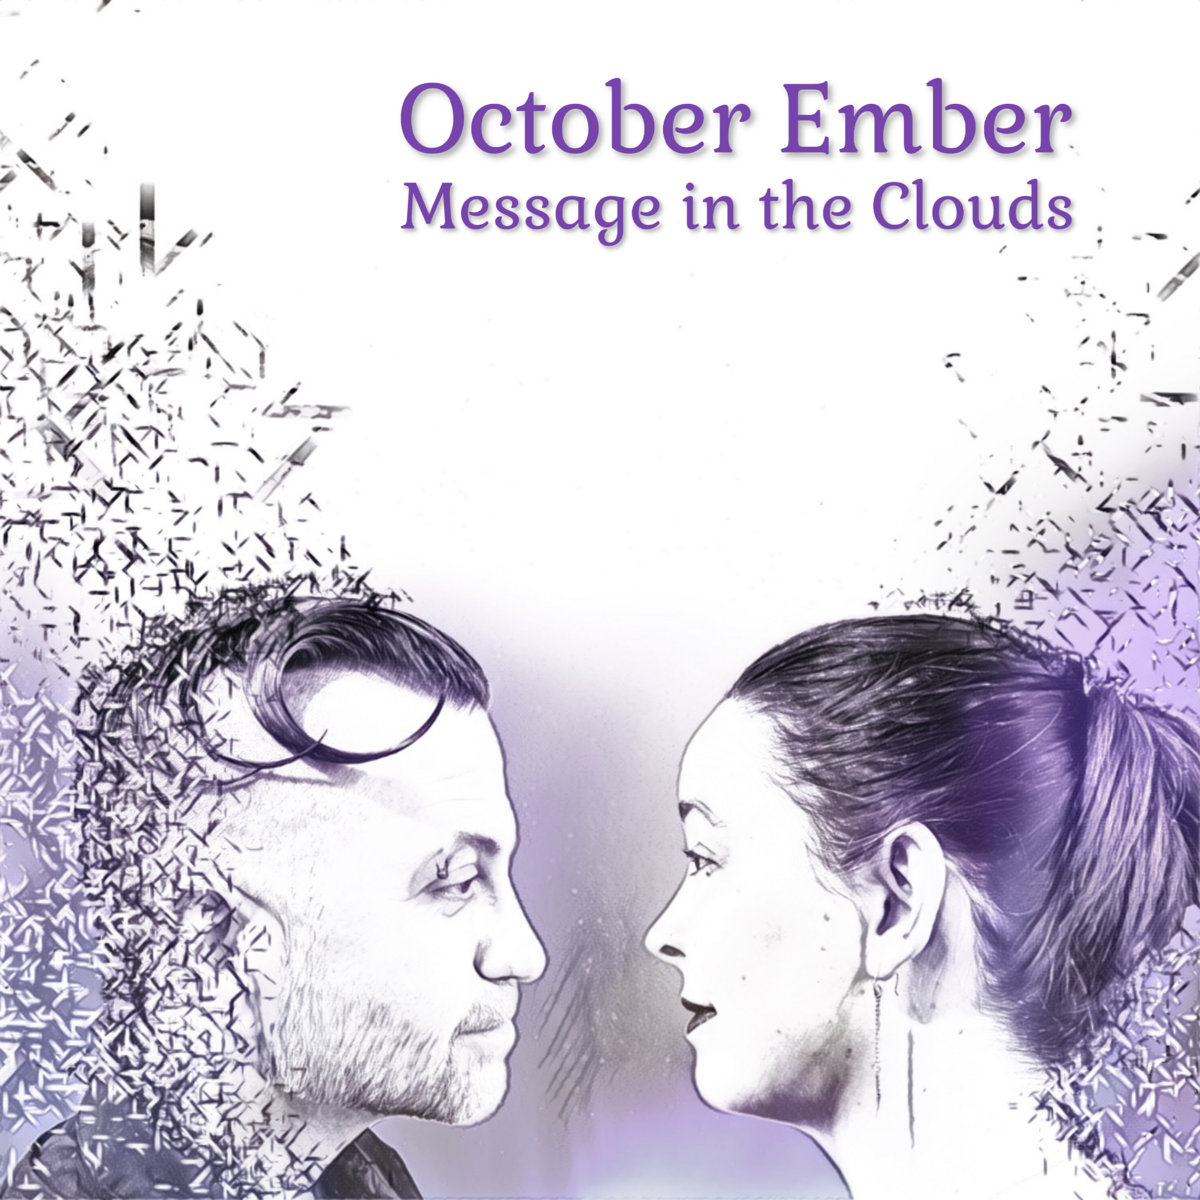 Message in the Clouds by October Ember